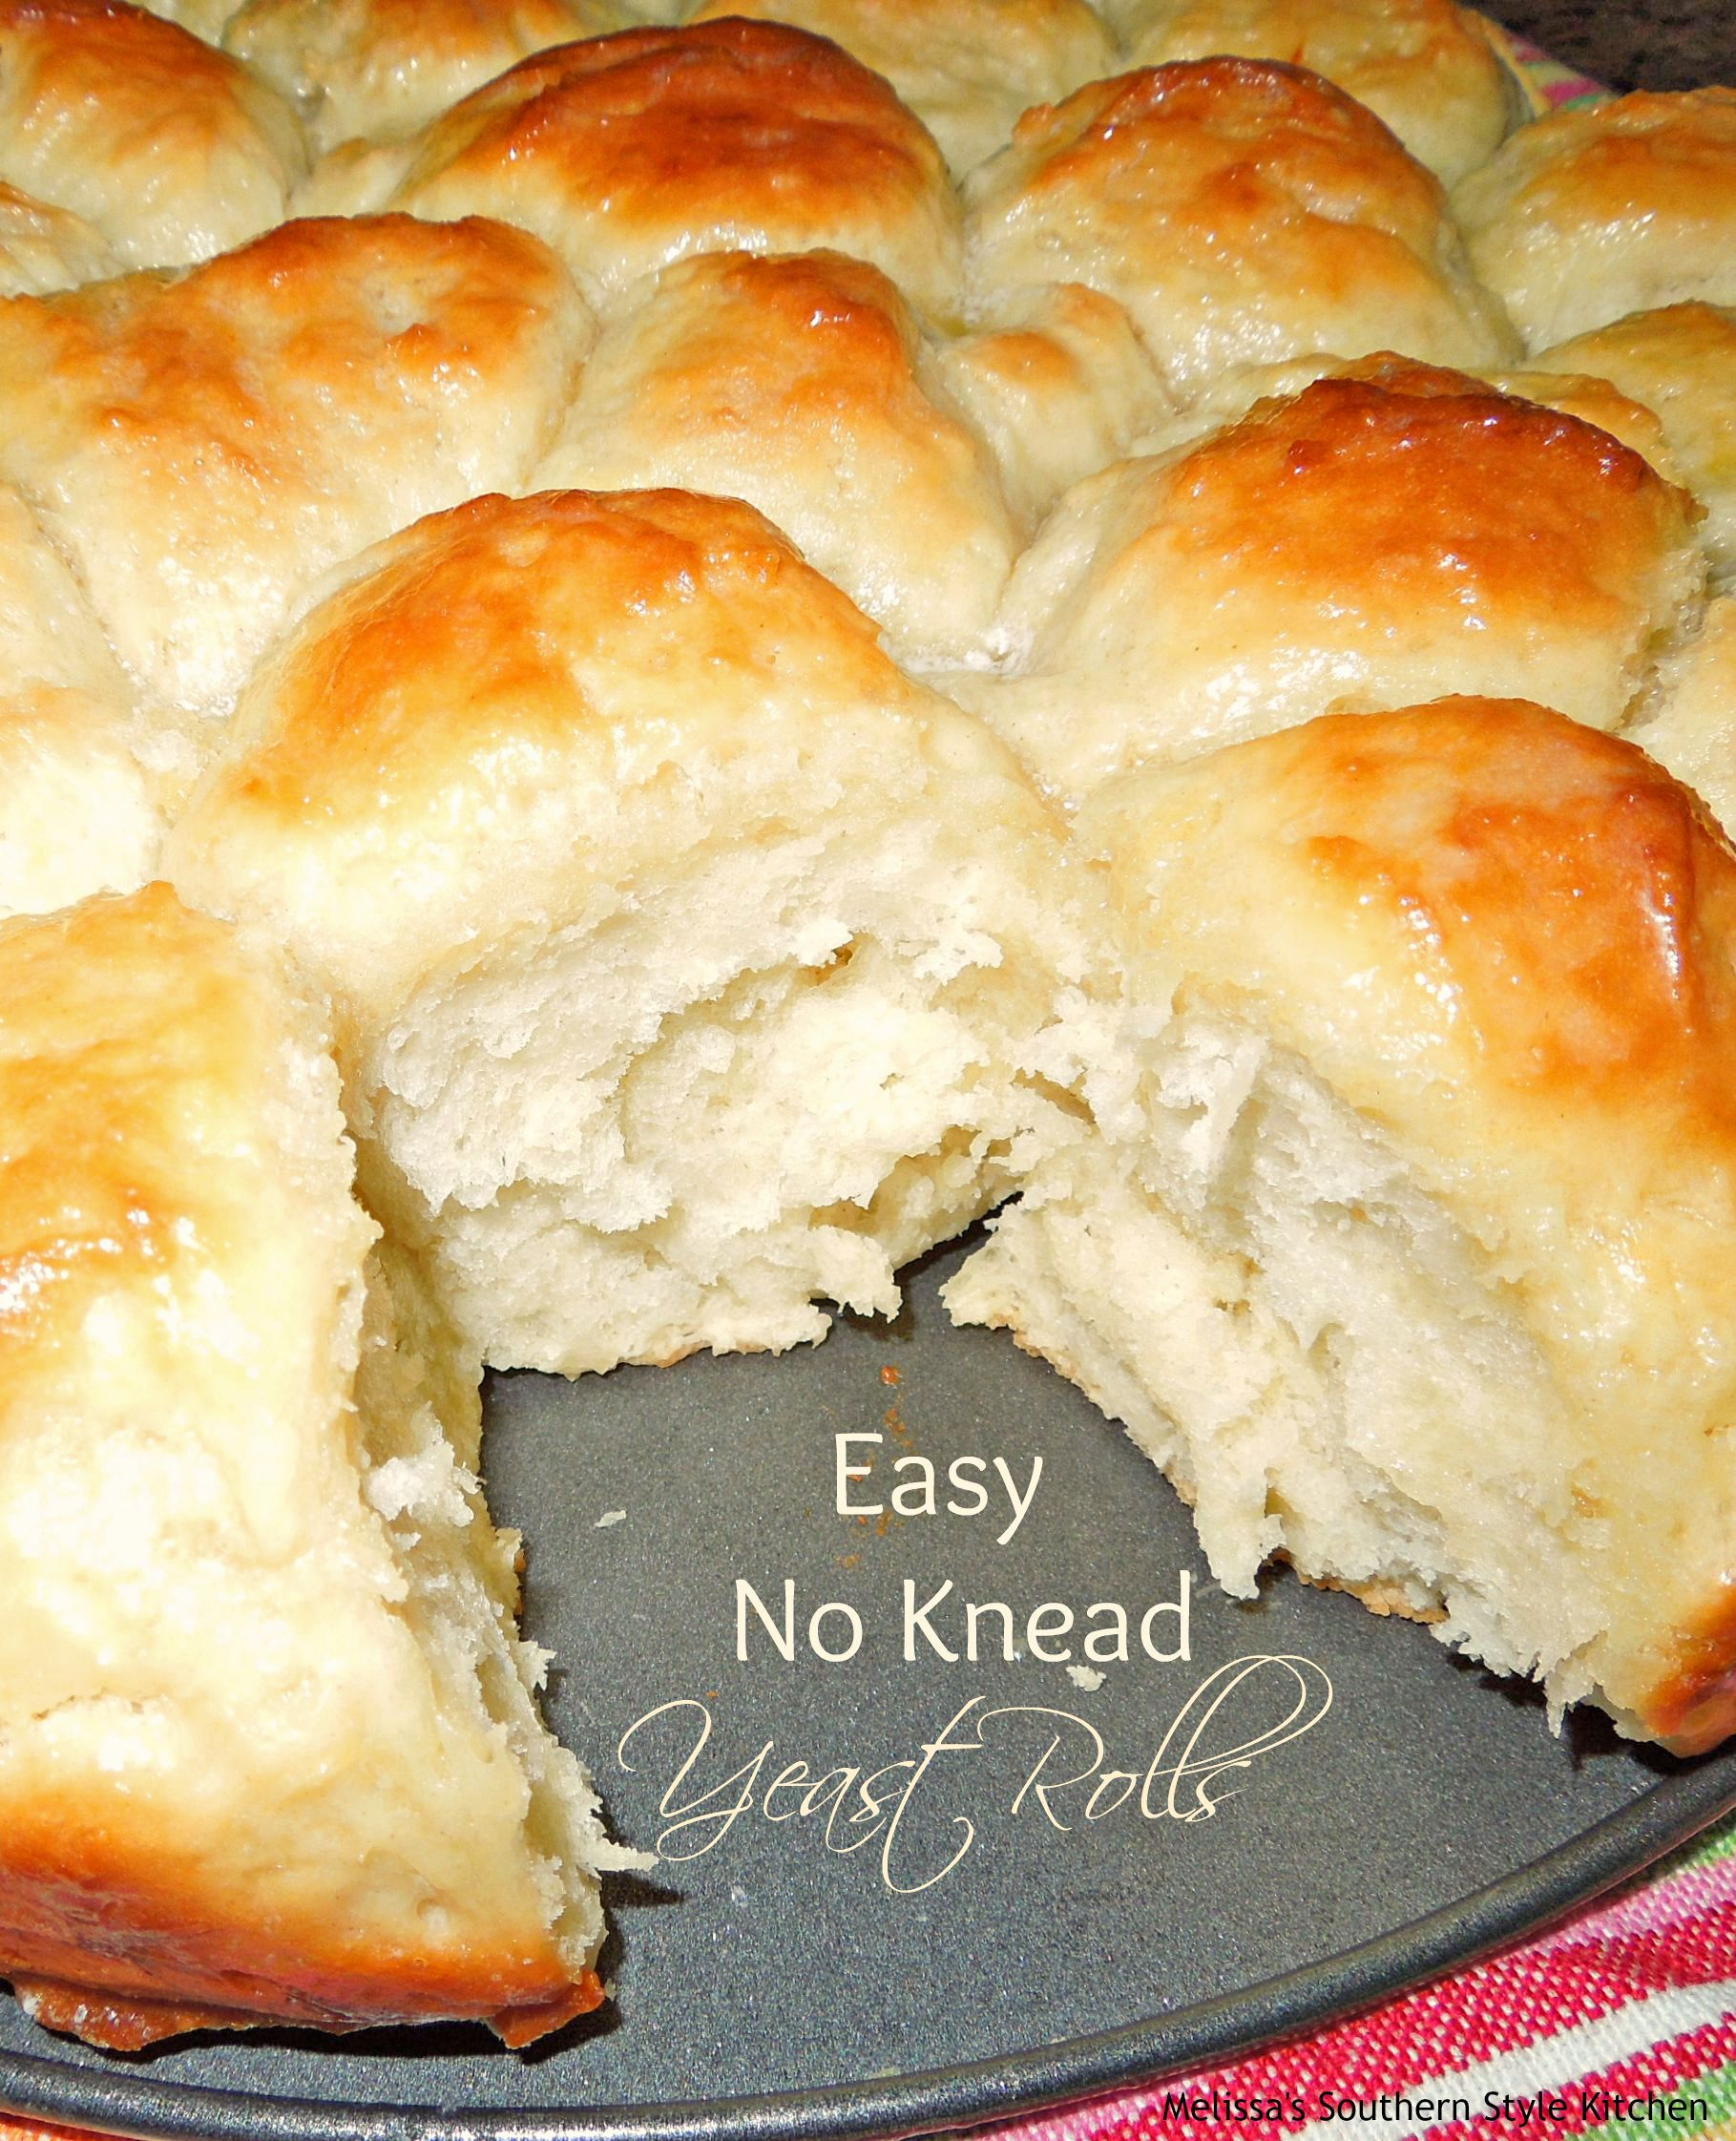 these easy no knead yeast rolls made a no knead believer out of me